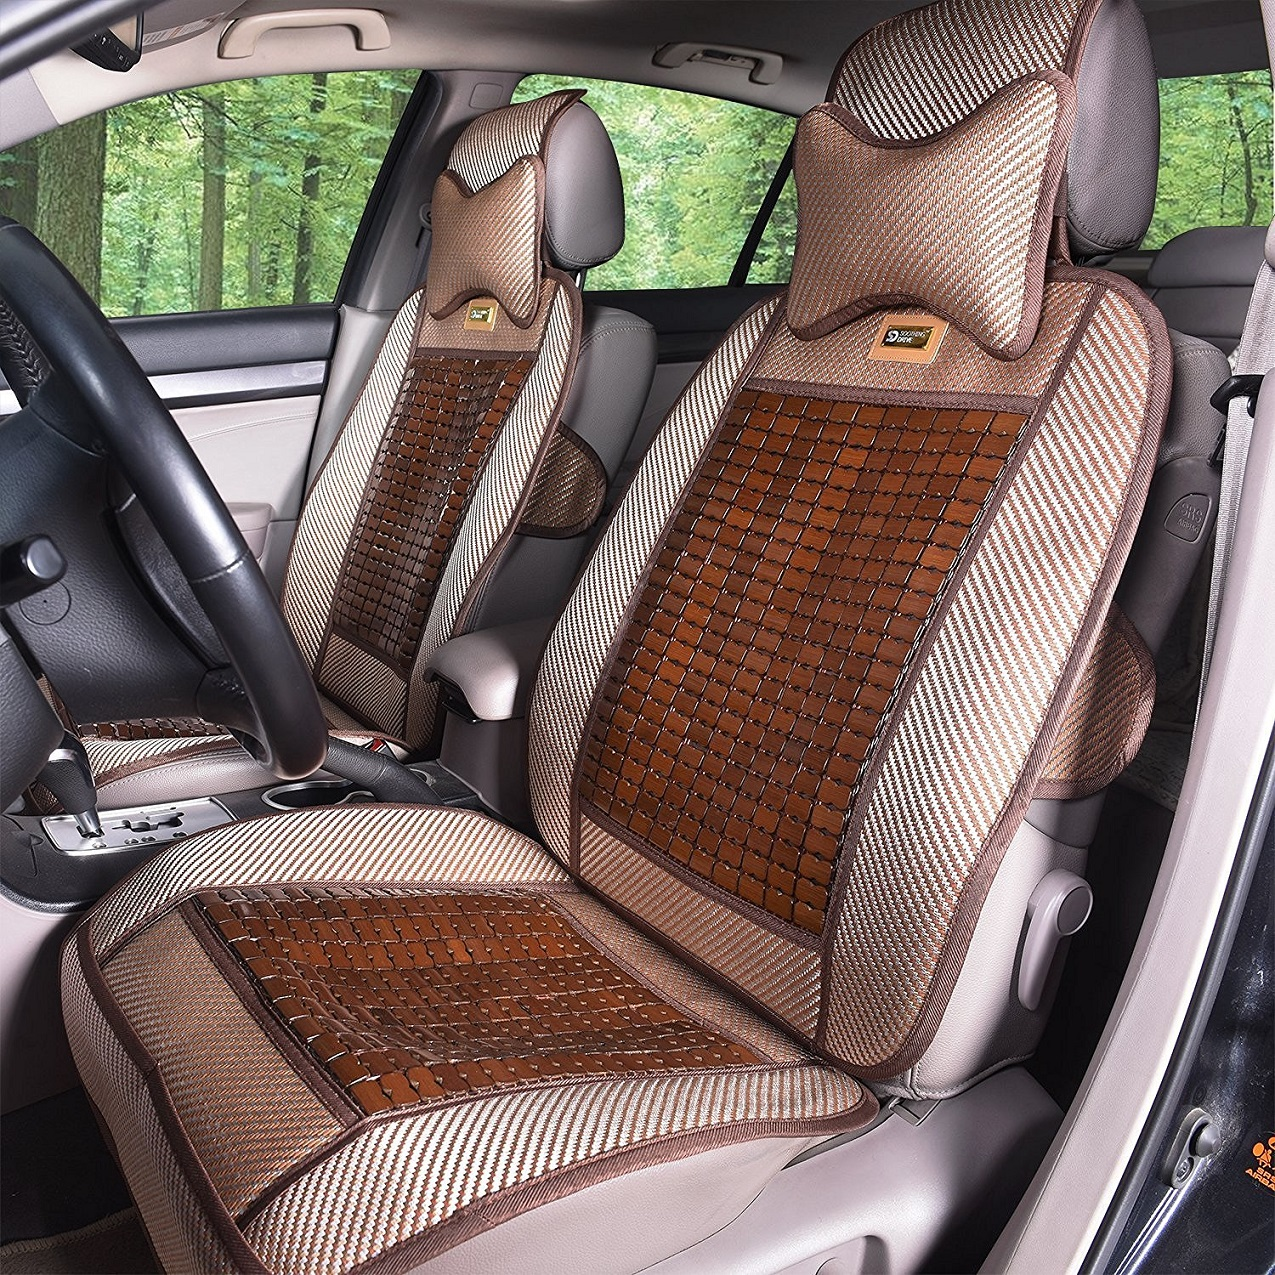 Qbedding Soothing Drive Cooling Series Universal Fit Automotive Seat Covers Picture